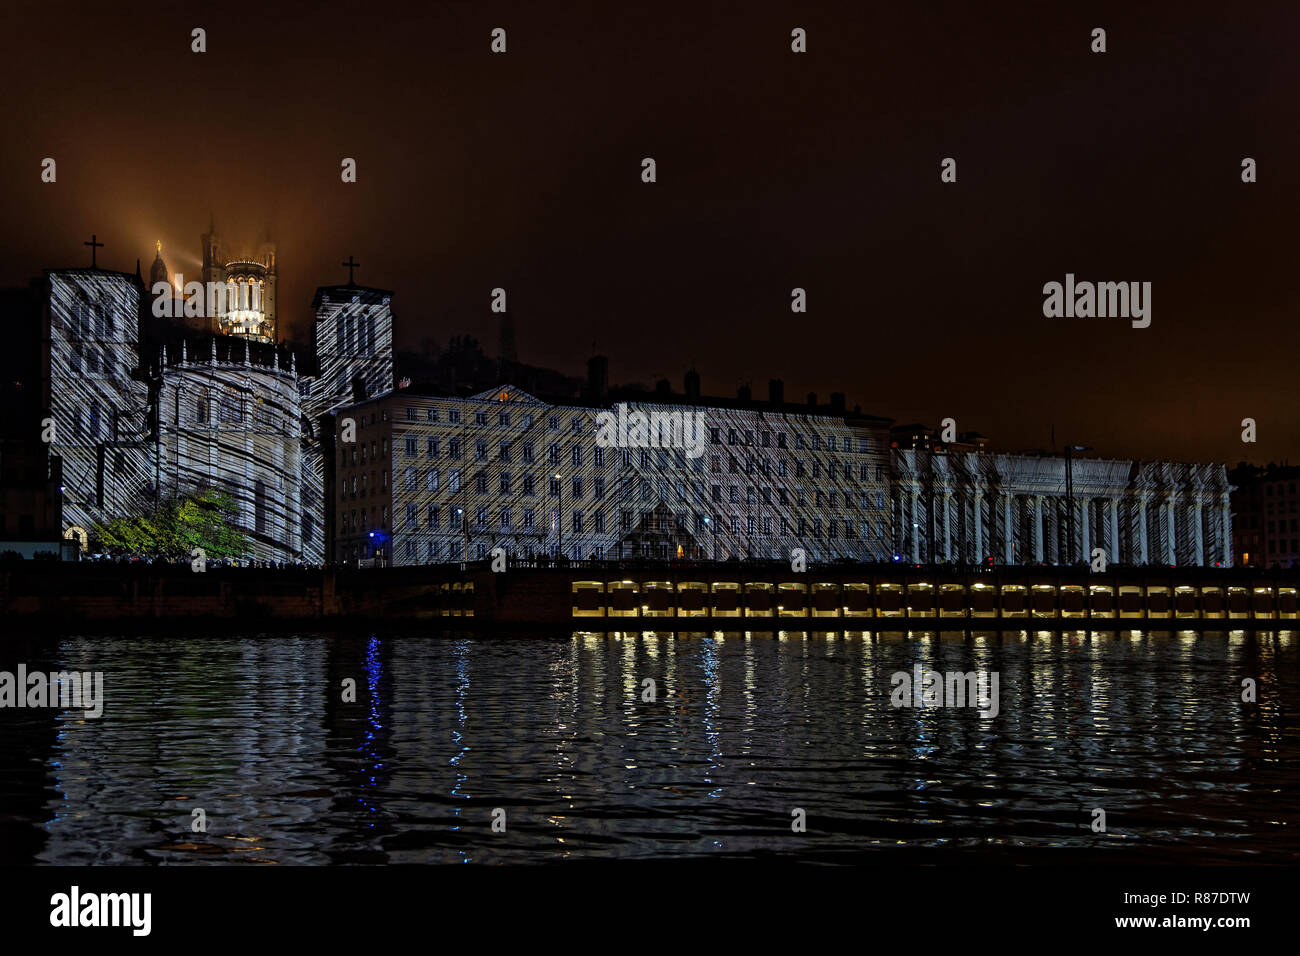 LYON, FRANCE, December 6, 2018 : Cathedral during Festival of the lights. For 4 nights, different artists light up buildings, streets mixing splendor  - Stock Image